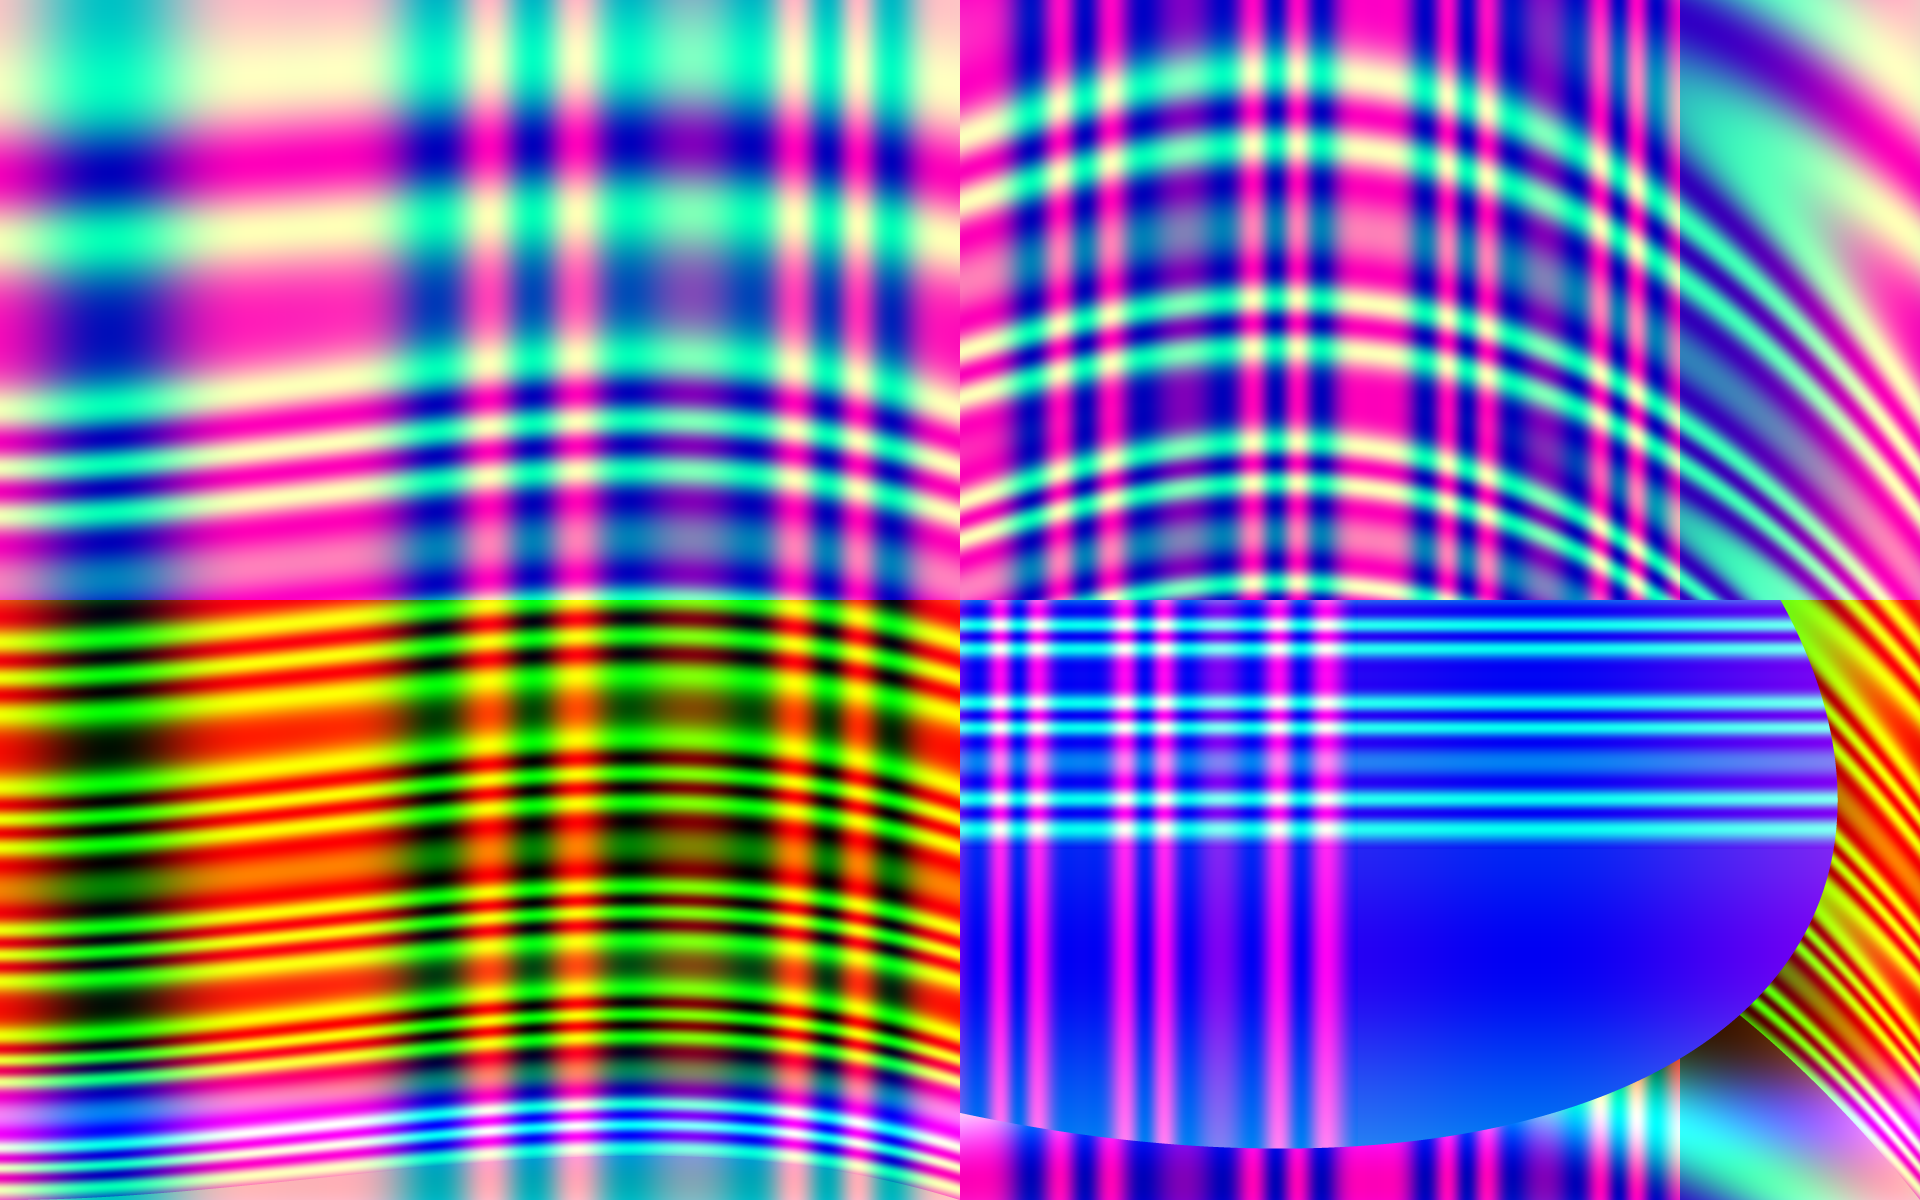 Torn_Sound_Waves.png